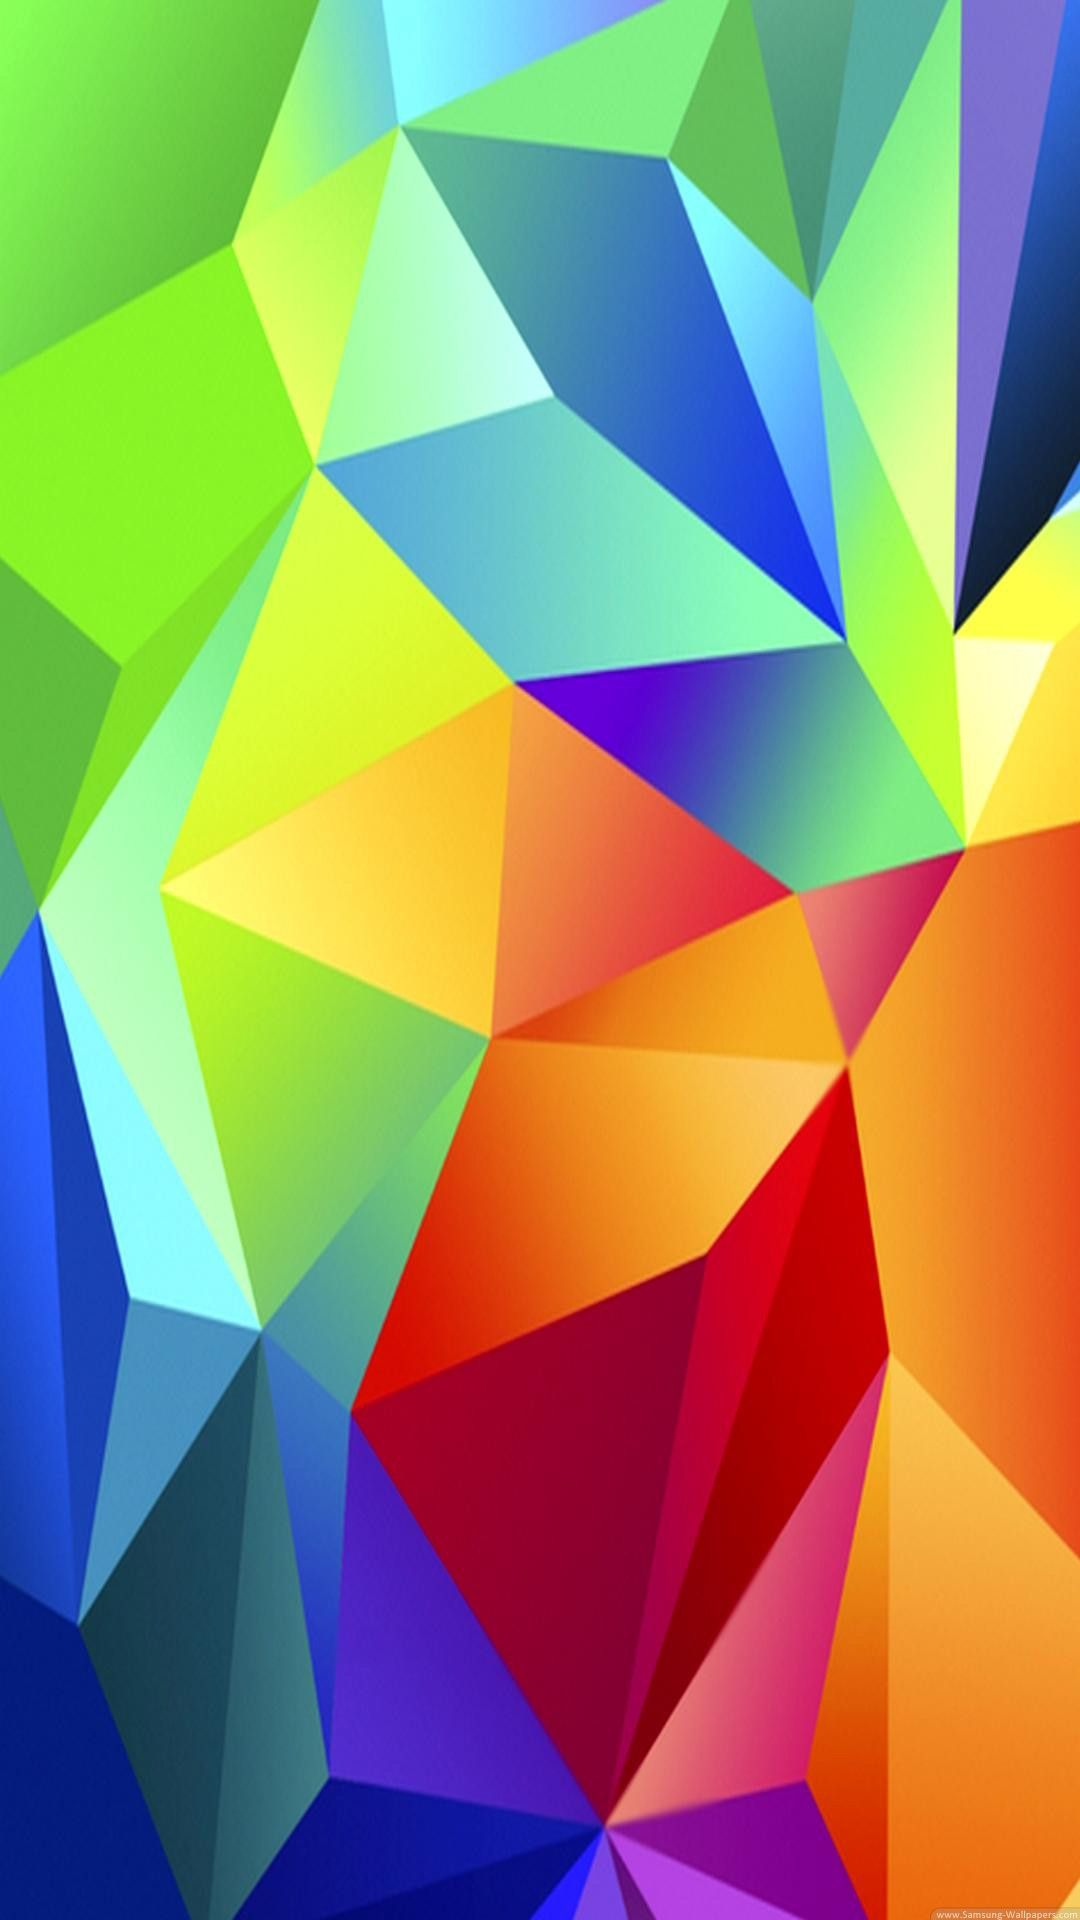 Abstract Iphone 6 Plus Wallpapers Colorful Red Blue Green Triangles Iphone 6 Plus Hd Wallpape S5 Wallpaper Abstract Iphone Wallpaper Samsung Galaxy Wallpaper